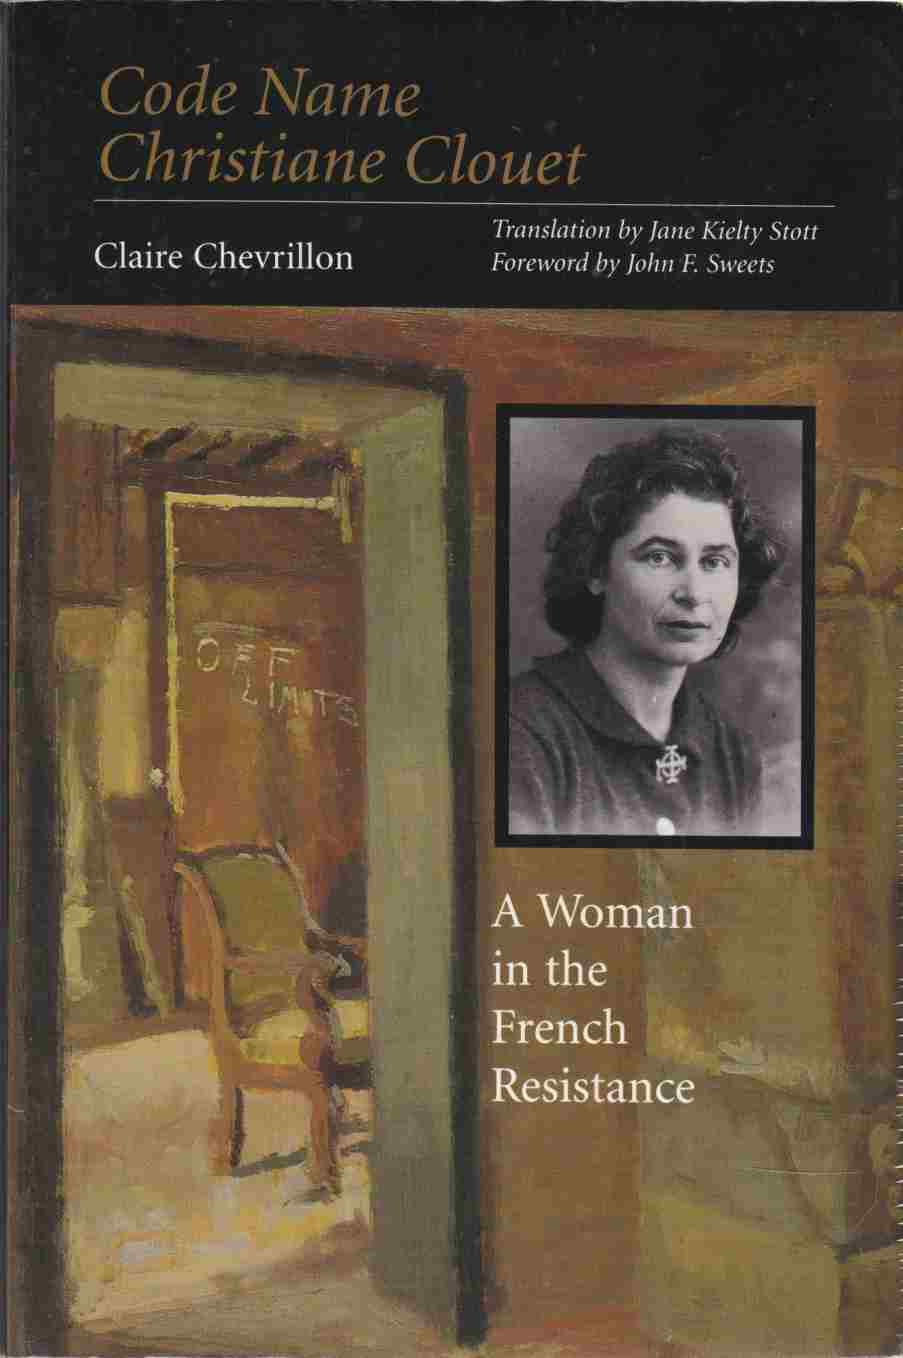 Image for Code Name Christiane Clouet A Woman in the French Resistance